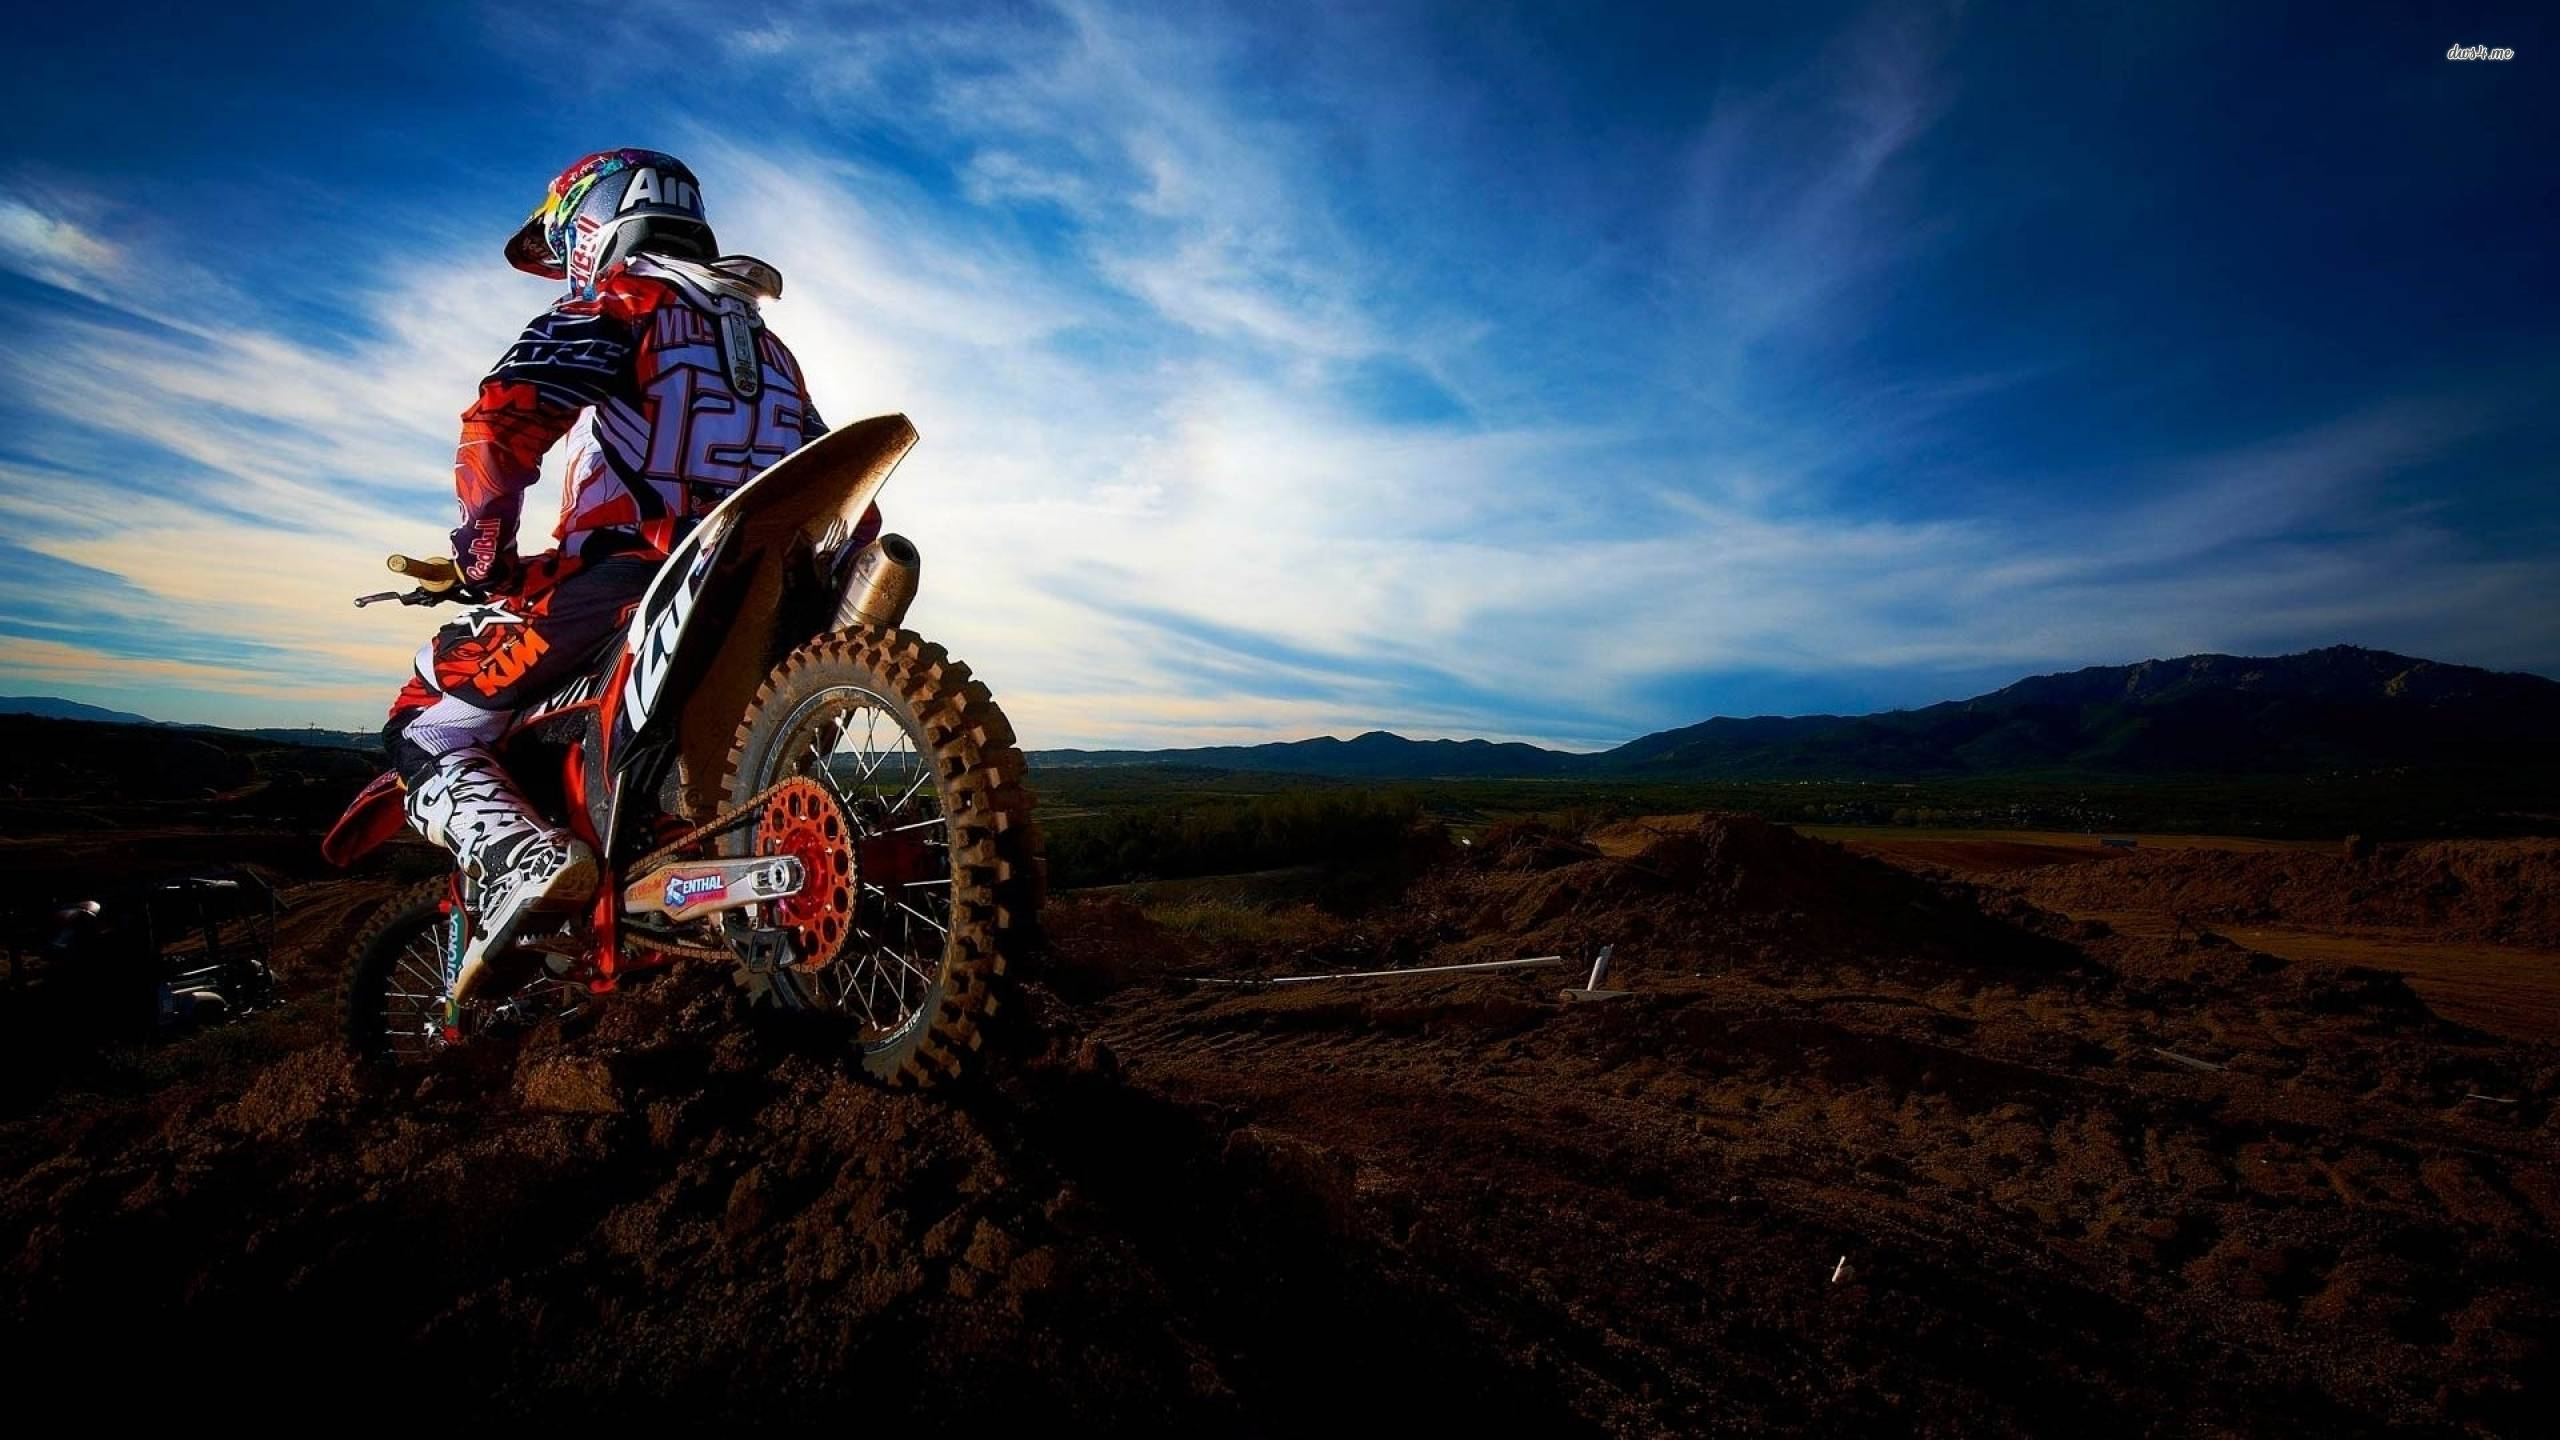 Motocross 2015 Wallpapers Wallpaper Cave HD Wallpapers Download Free Images Wallpaper [1000image.com]